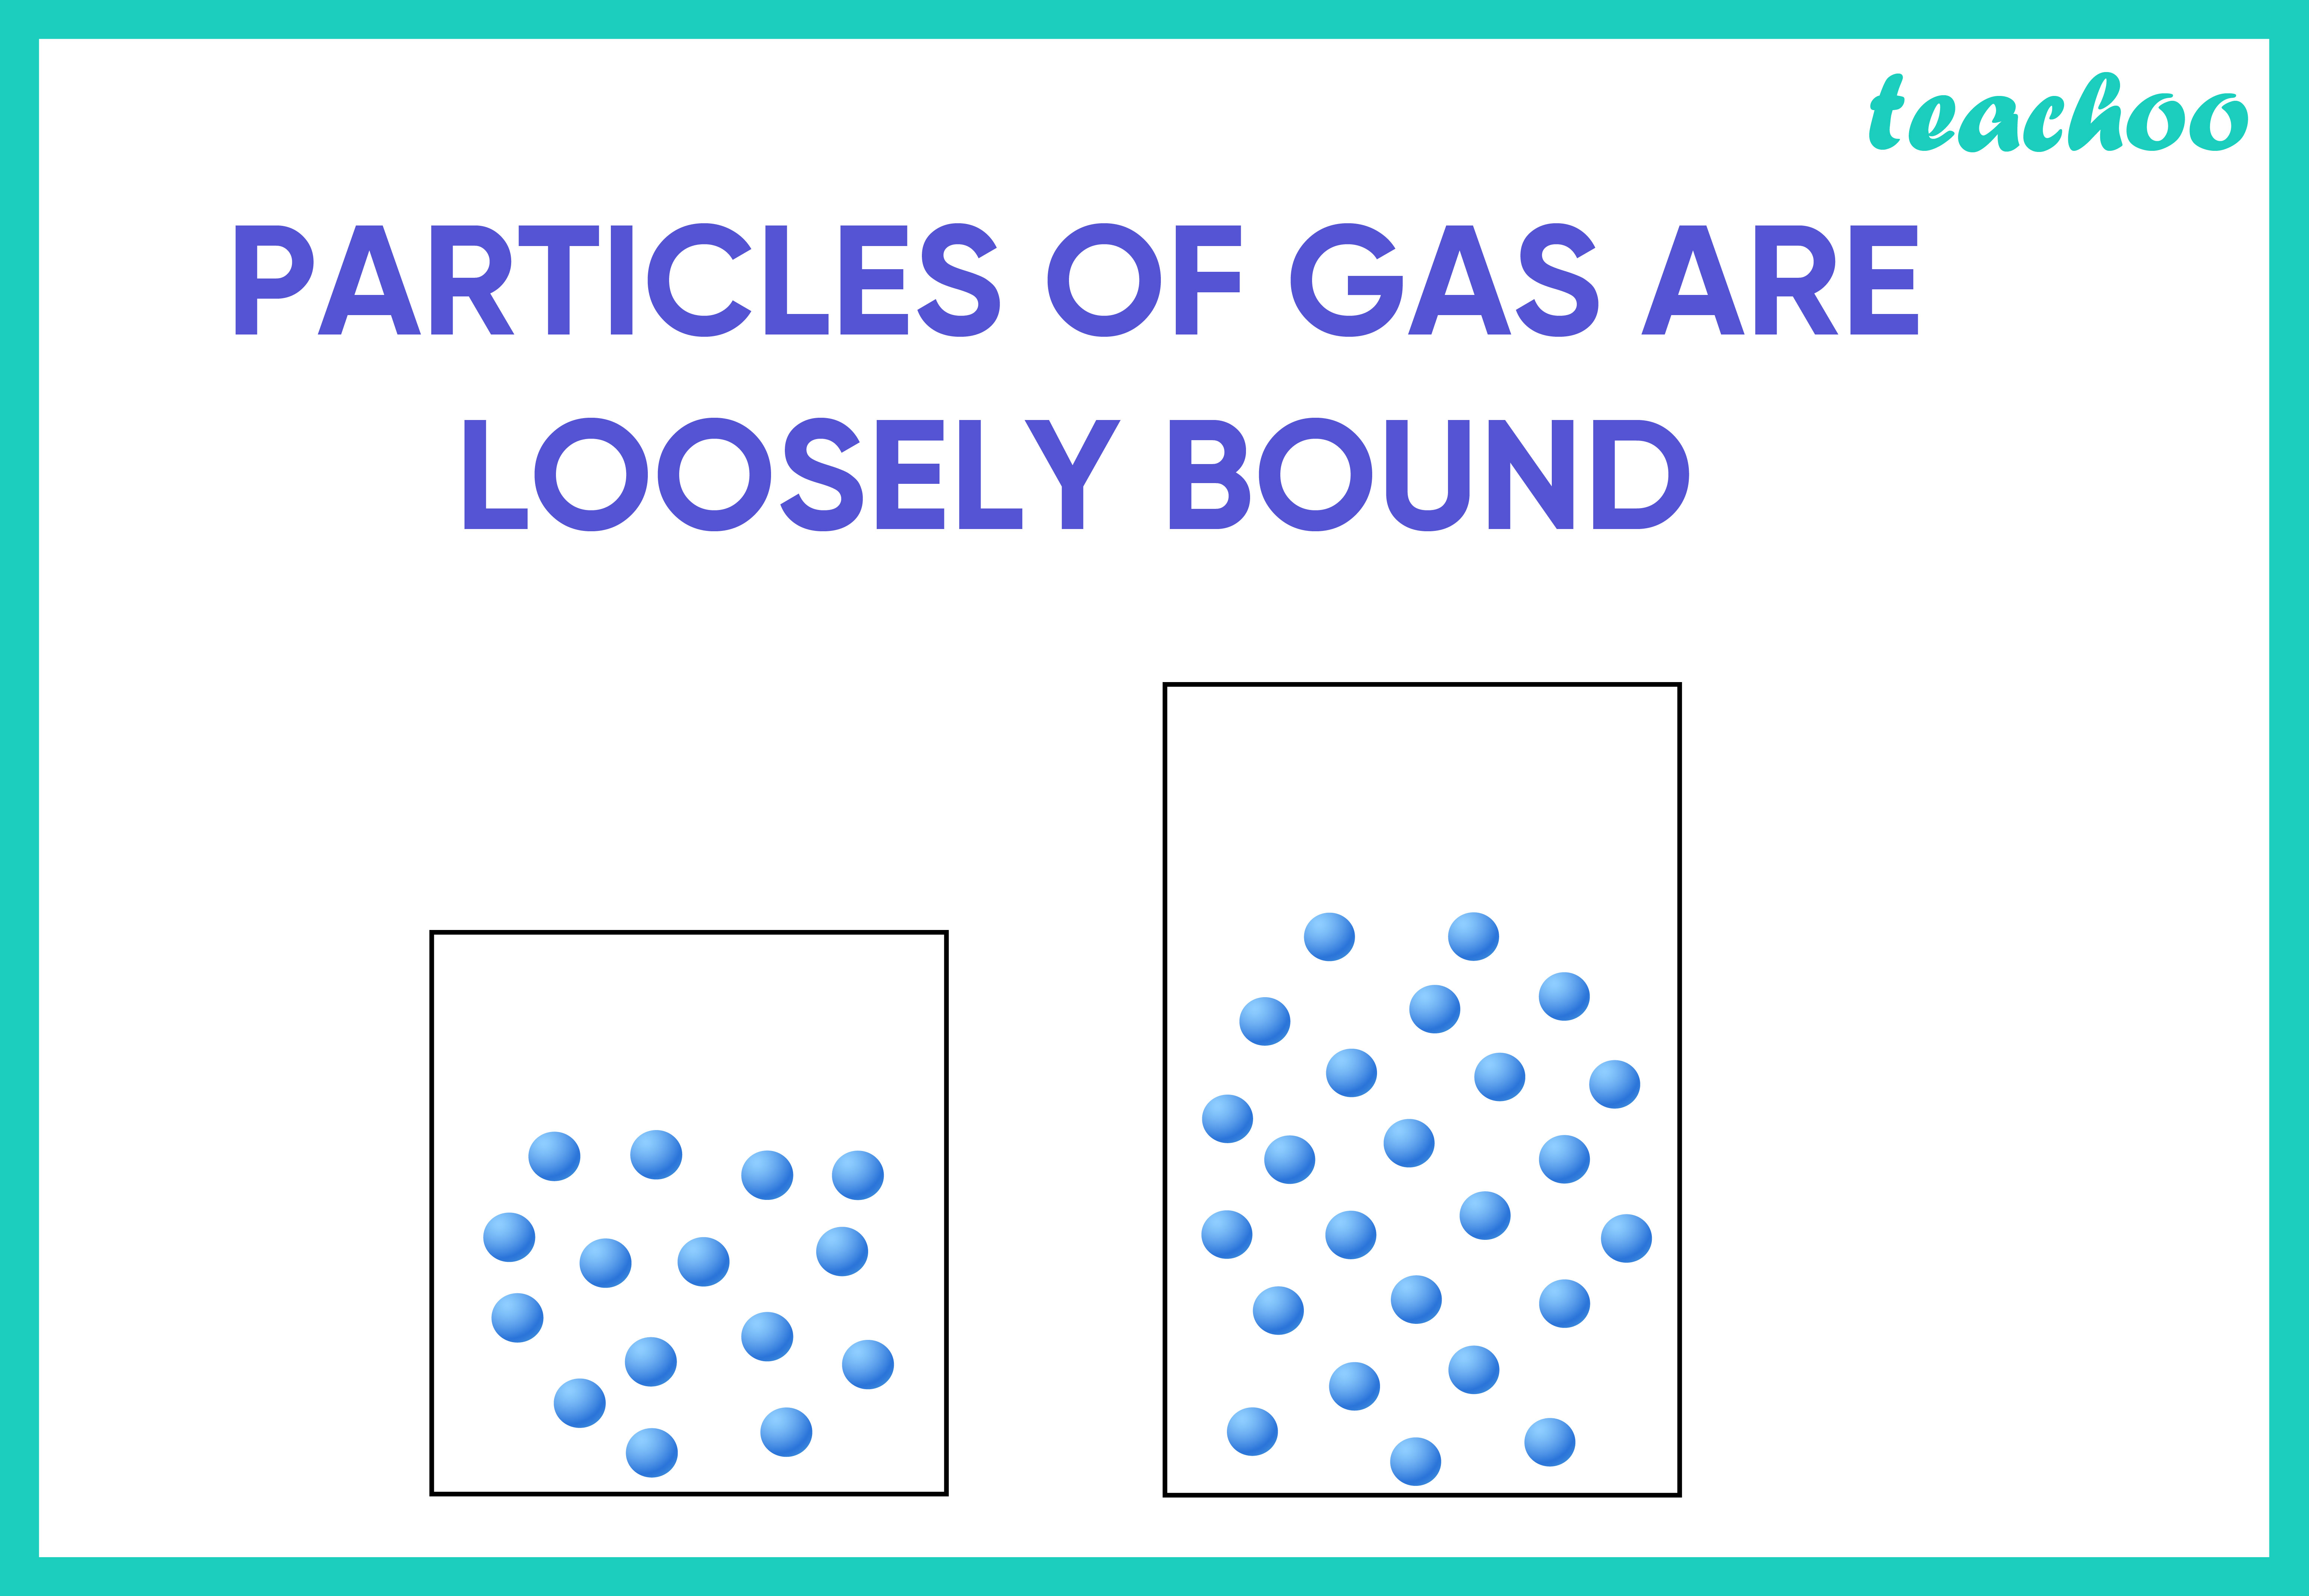 Particles of Gas are loosely bound-Teachoo-01.jpg